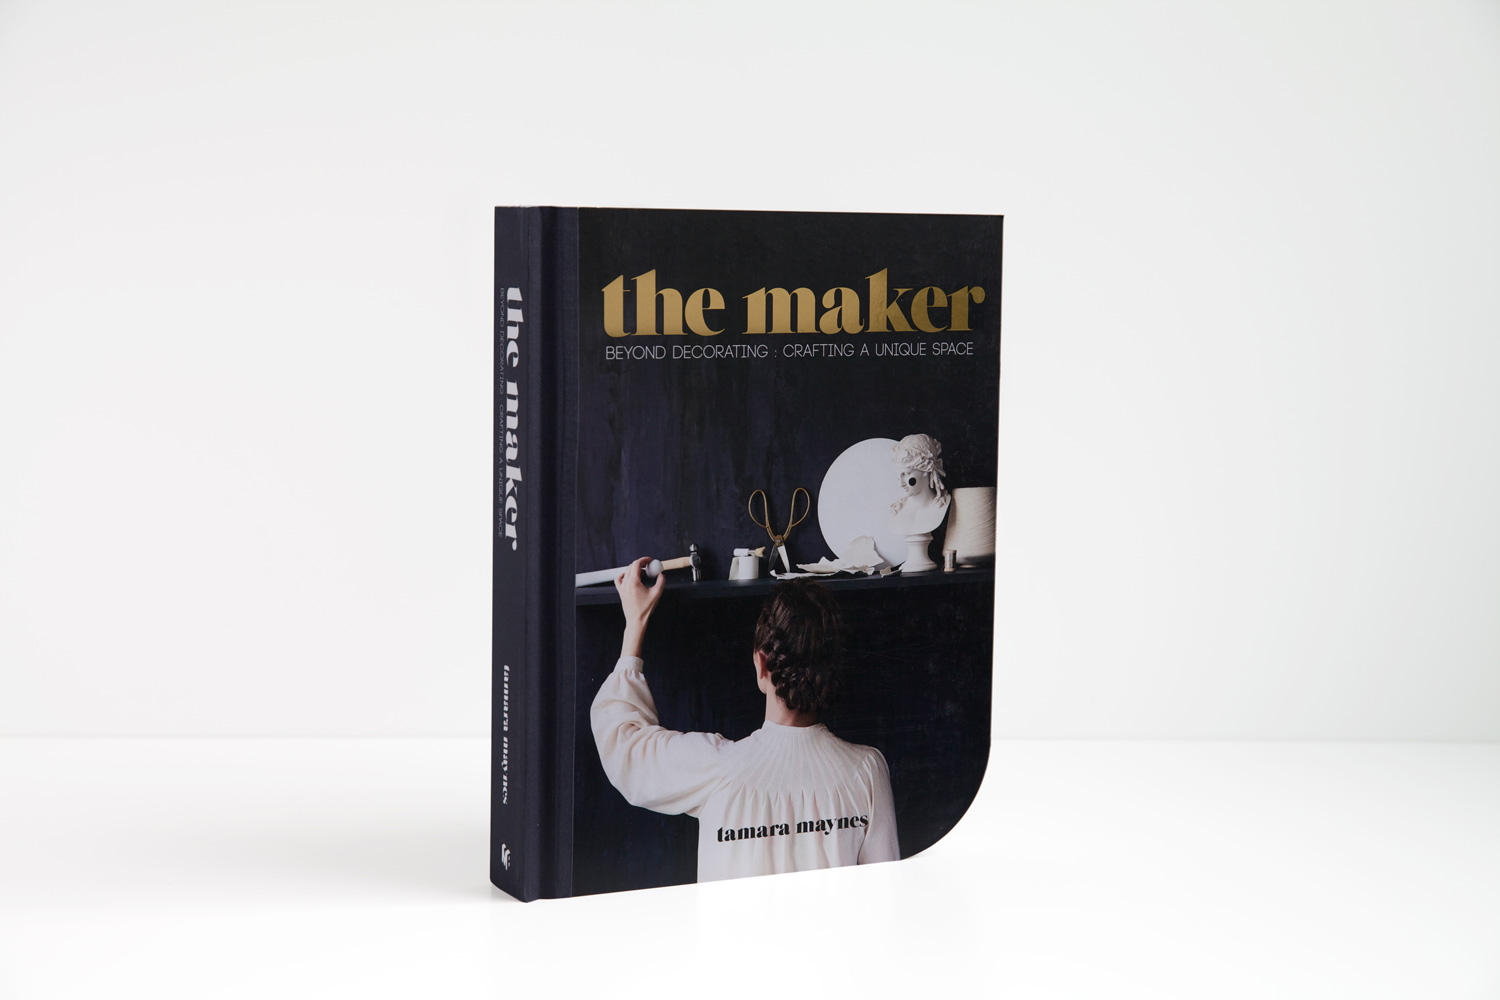 Fashion Book Cover Maker : The maker book by tamara maynes yellowtrace